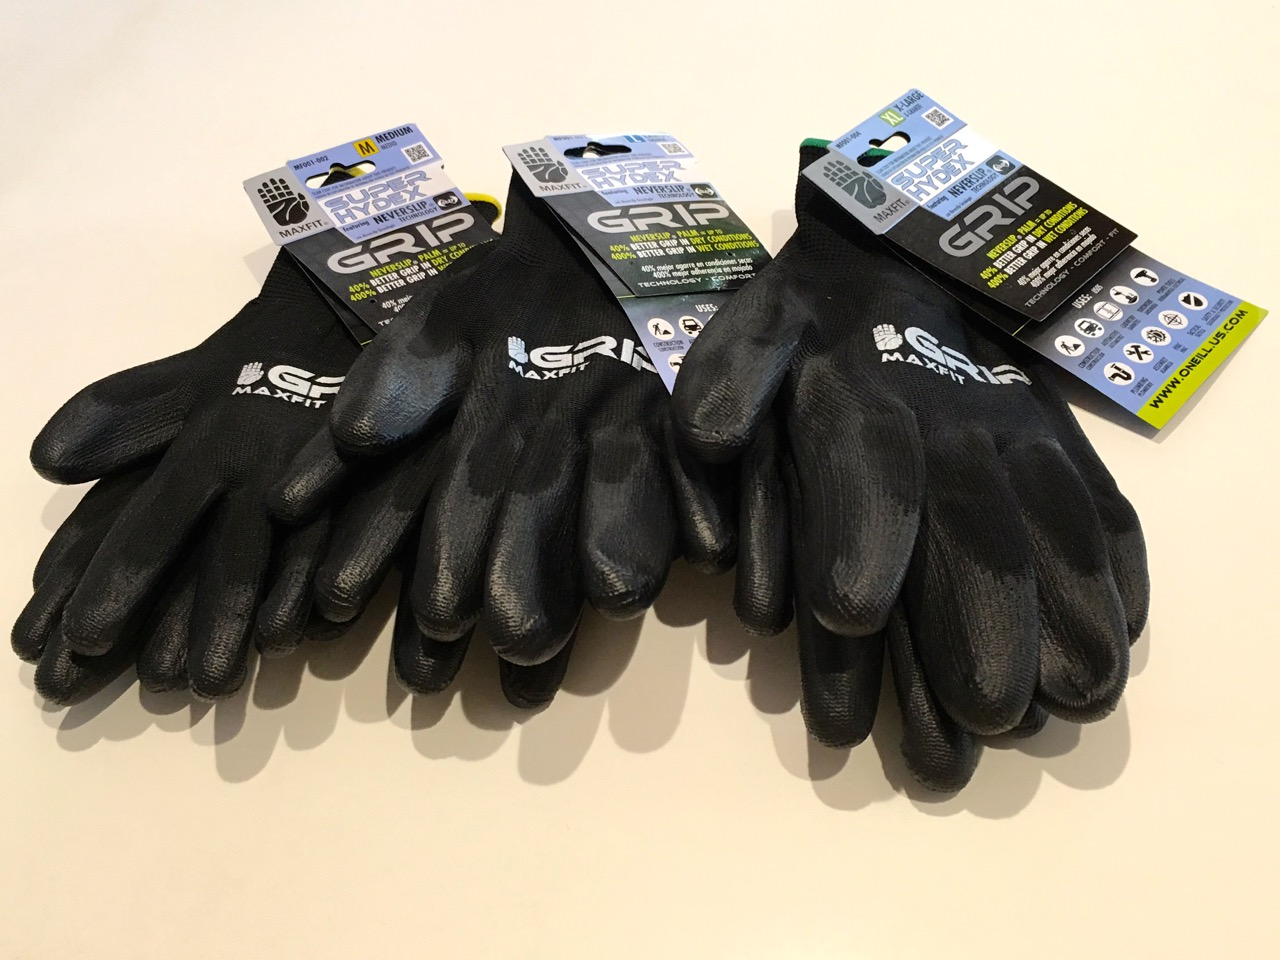 Riding gloves area part of beginners riding protection tips to guard your hands.